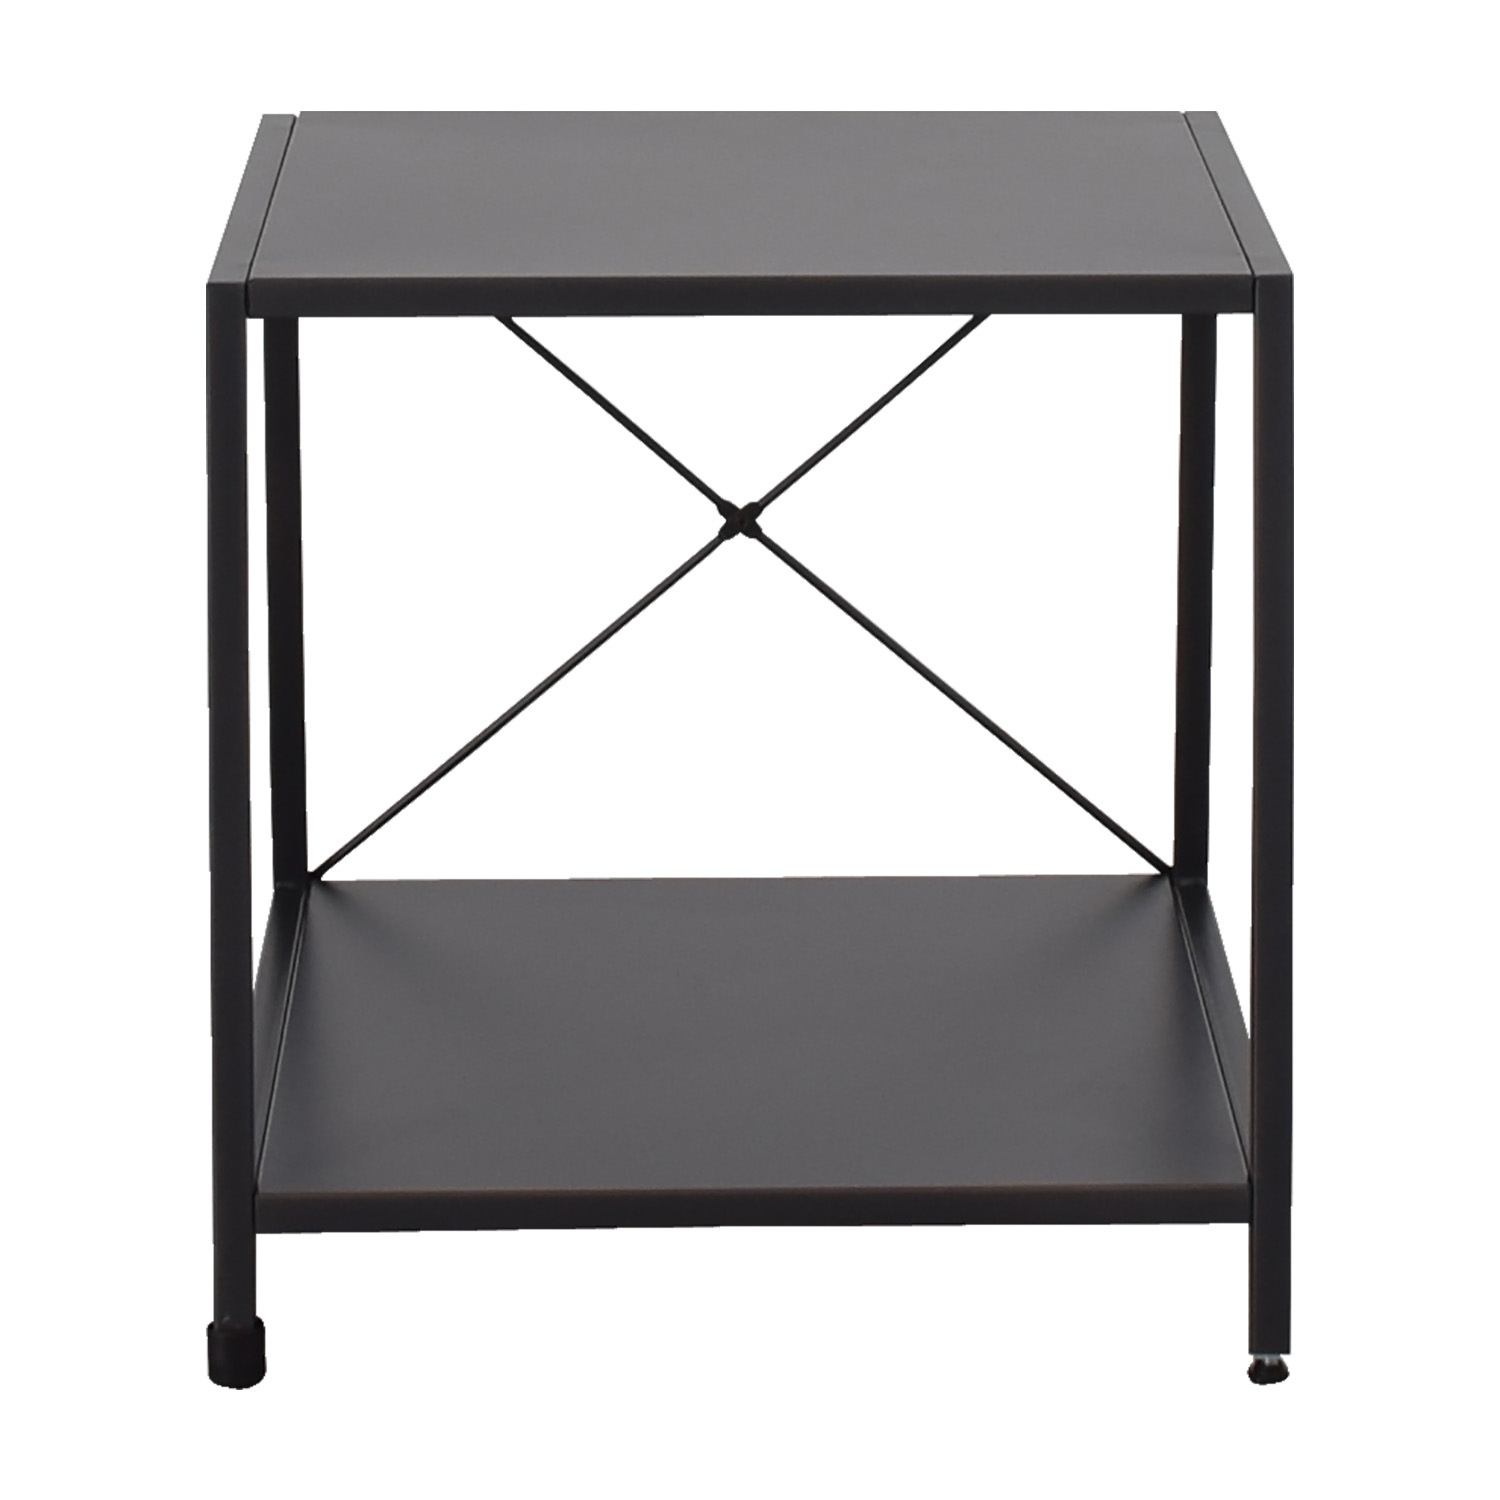 CB2 CB2 Charcoal Nightstand nyc